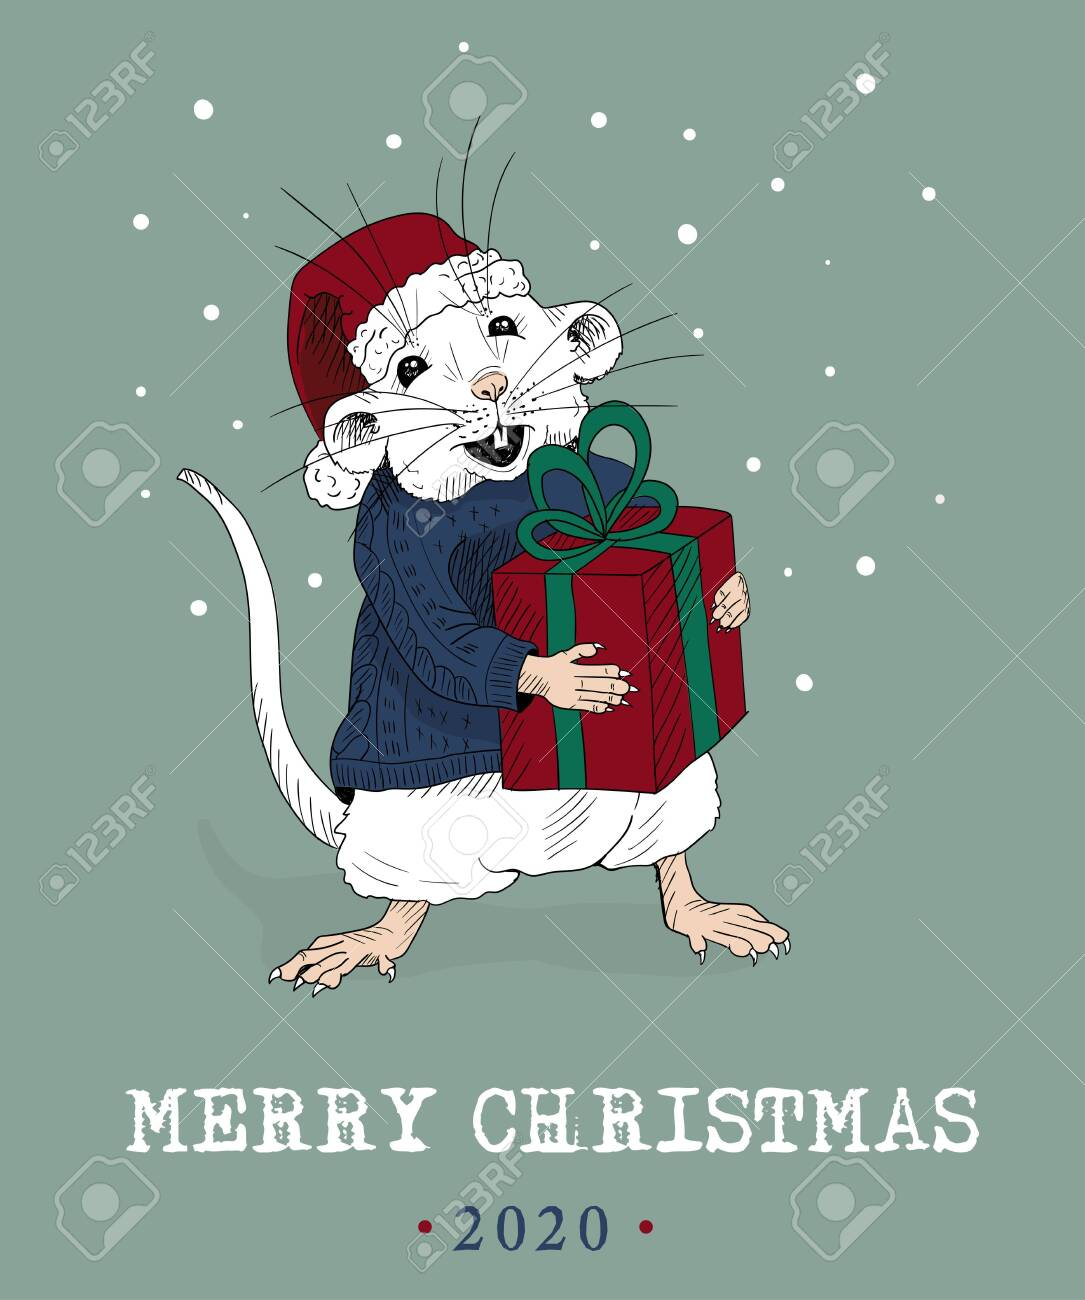 Merry Christmas Funny Images.Merry Christmas Funny Mouse Friend Sketched Card Vector Illustration